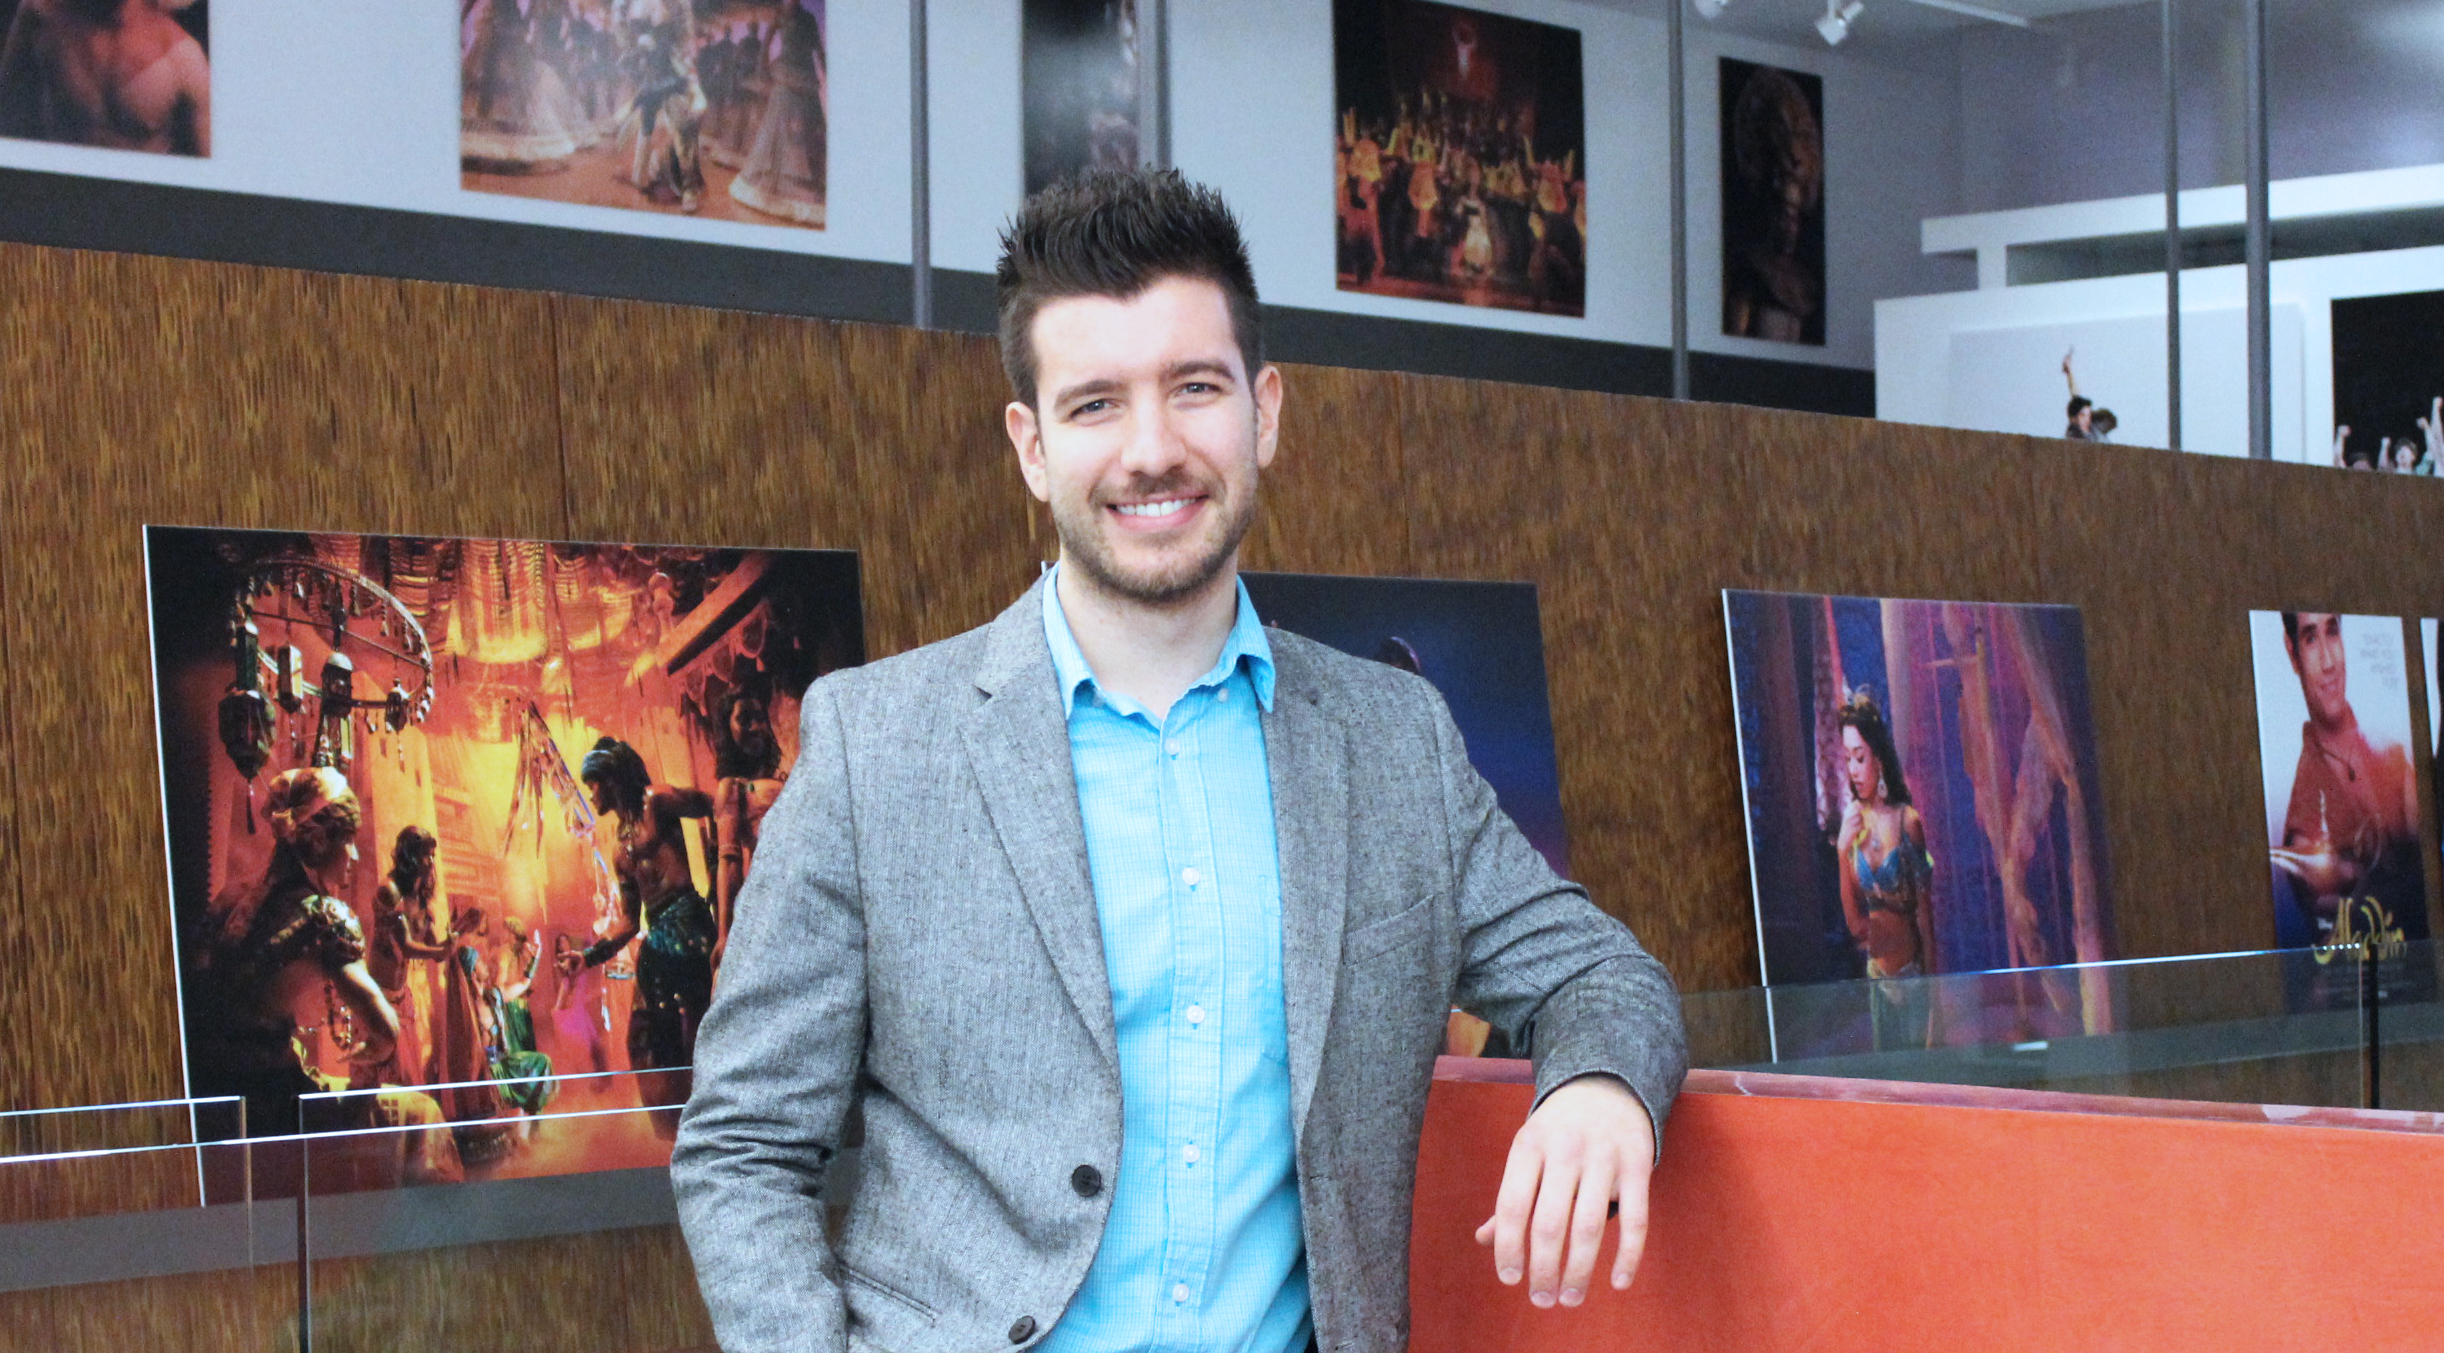 Chad at the New Amsterdam Theatre, where he designs promotional materials for Disney Theatrical Group.